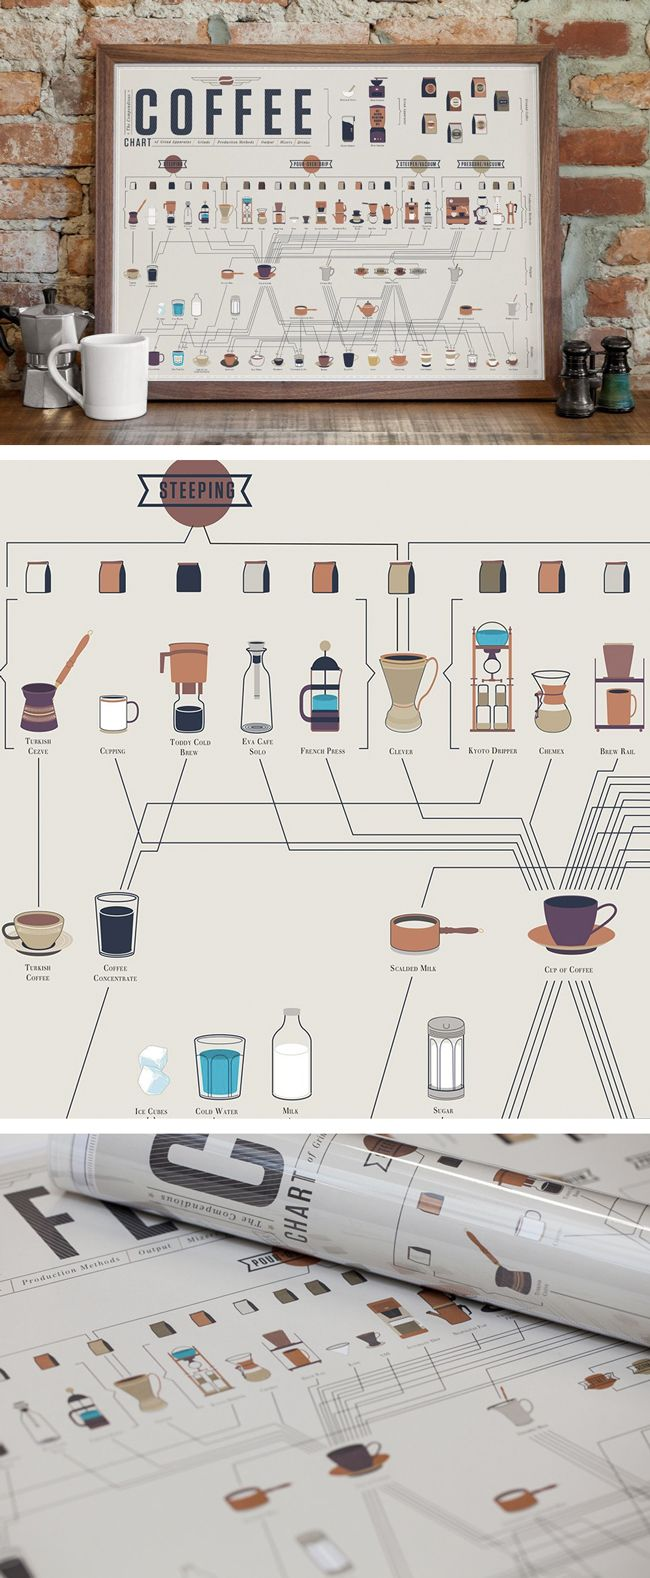 Where would we be without coffee? Still in bed, that's where. The Colossal Shop is fueled by coffee, and chances are you are, too. (Tea drinkers, we tip our hats!). This chart of coffee, compiled by P